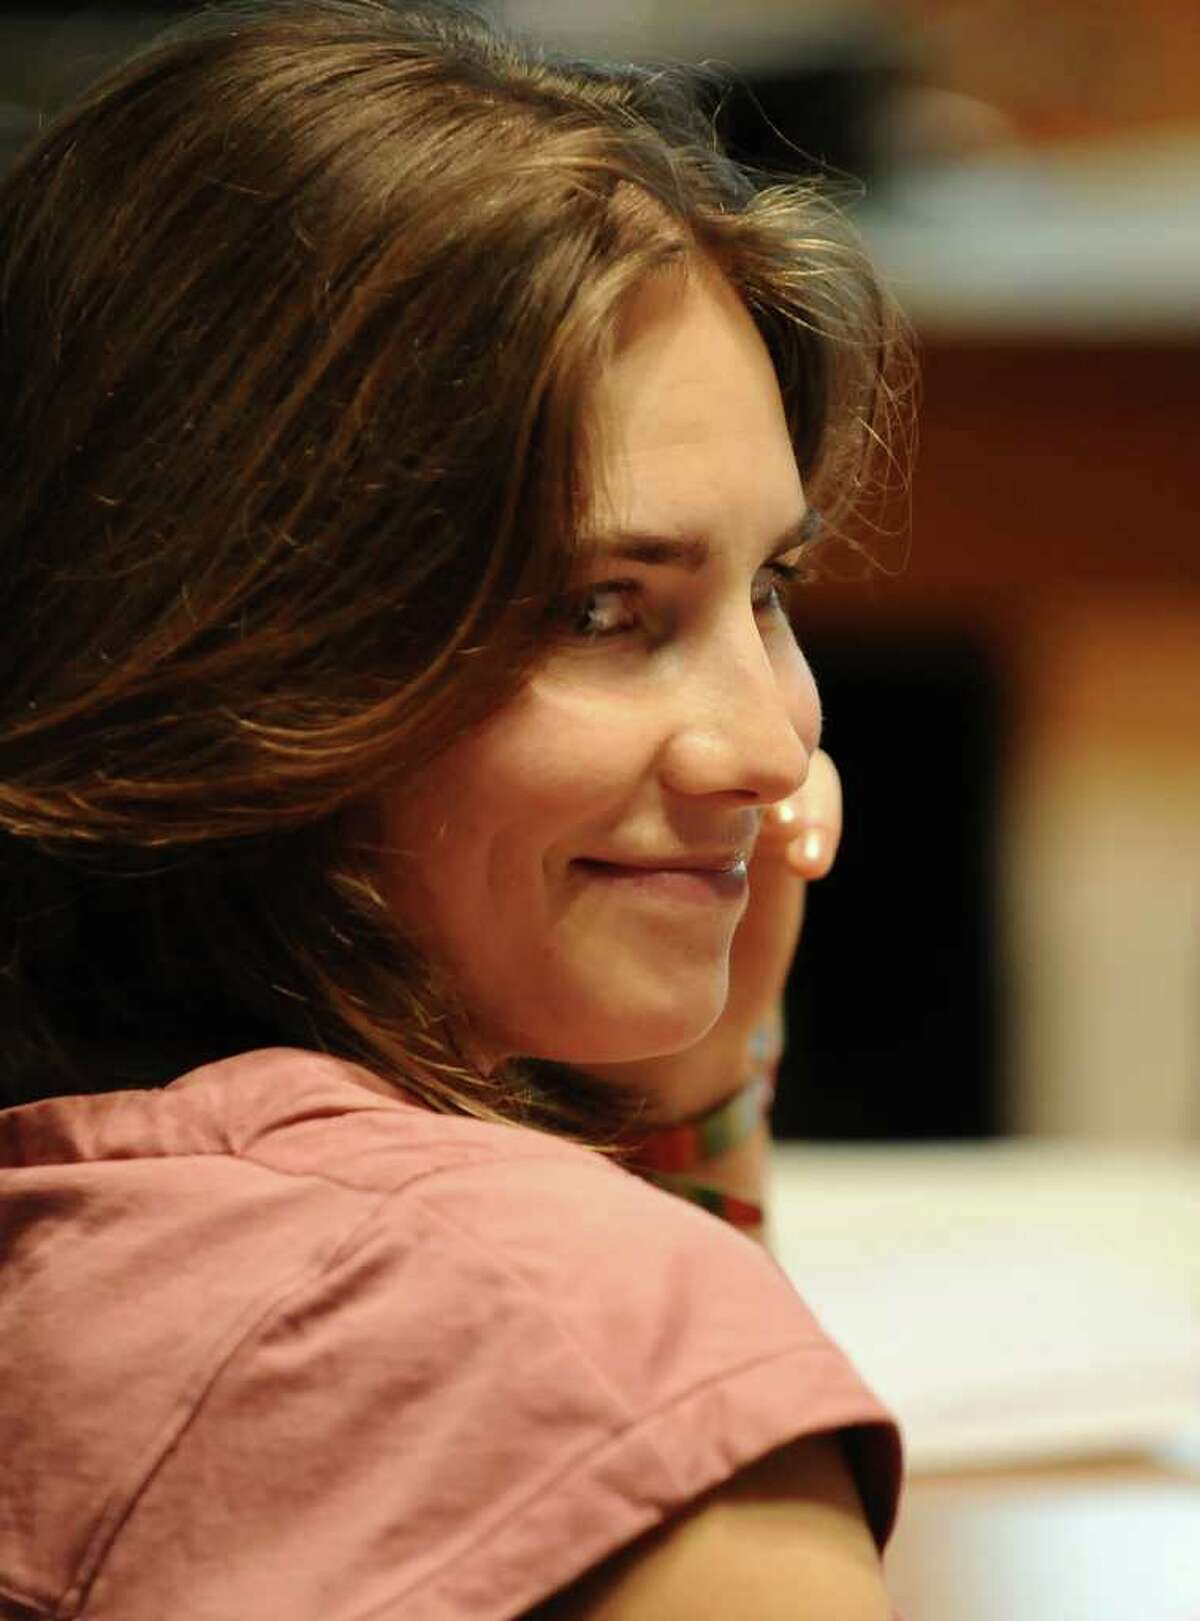 Amanda Knox smiles in court on Friday as her appeal trial against her conviction for the murder of British housemate Meredith Kercher is winding up, with prosecutors set to present their final arguments. AFP PHOTO/MARIO LAPORTA